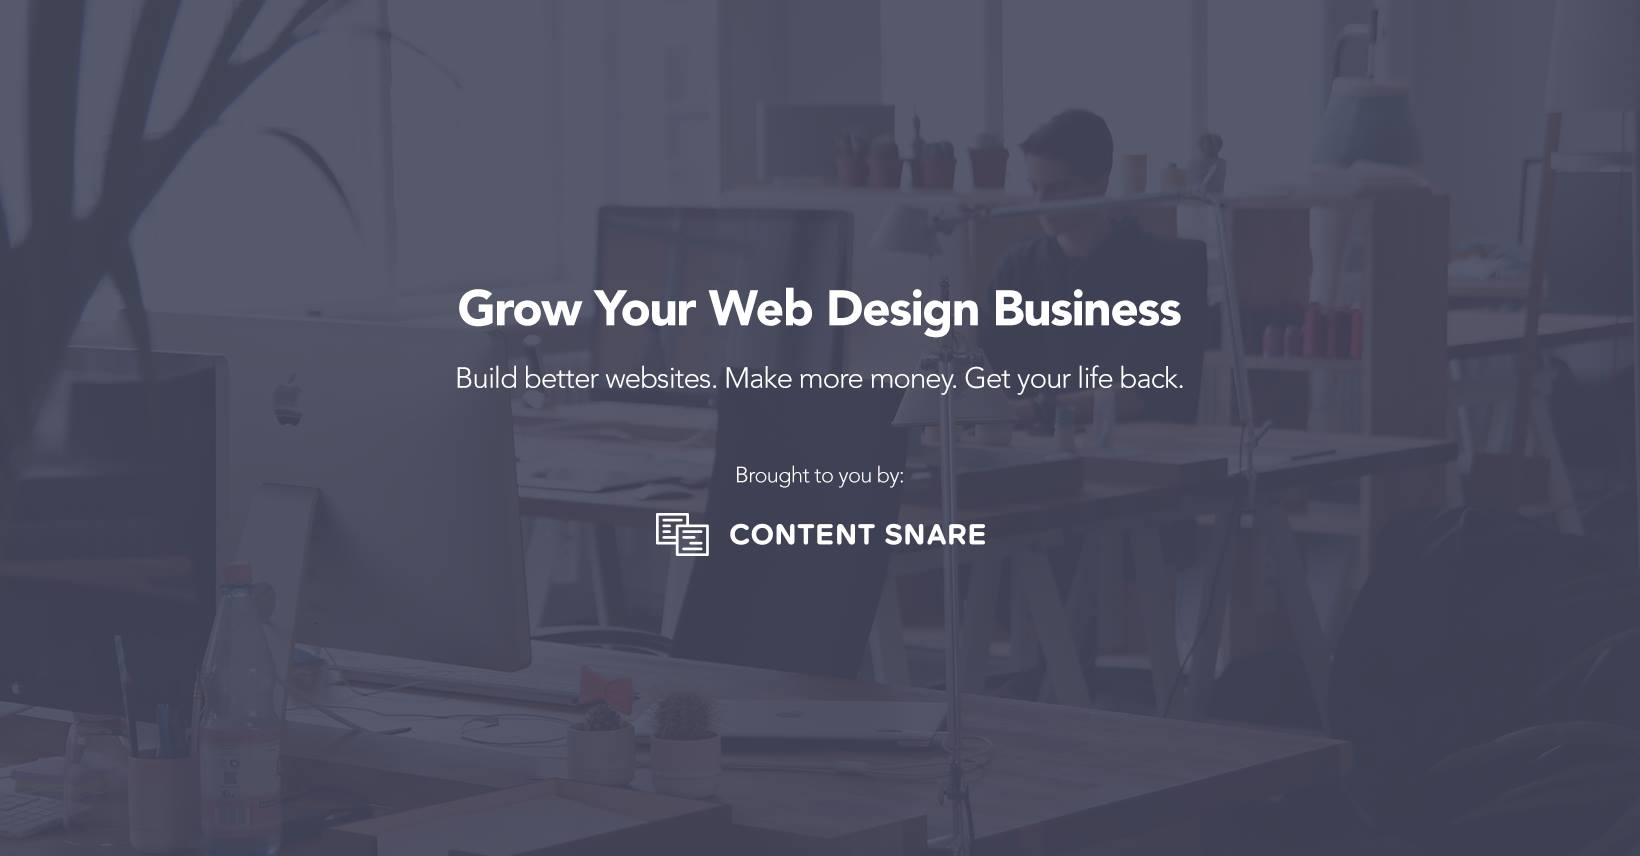 The 12 Facebook Groups for Web Designers Worth Joining 4